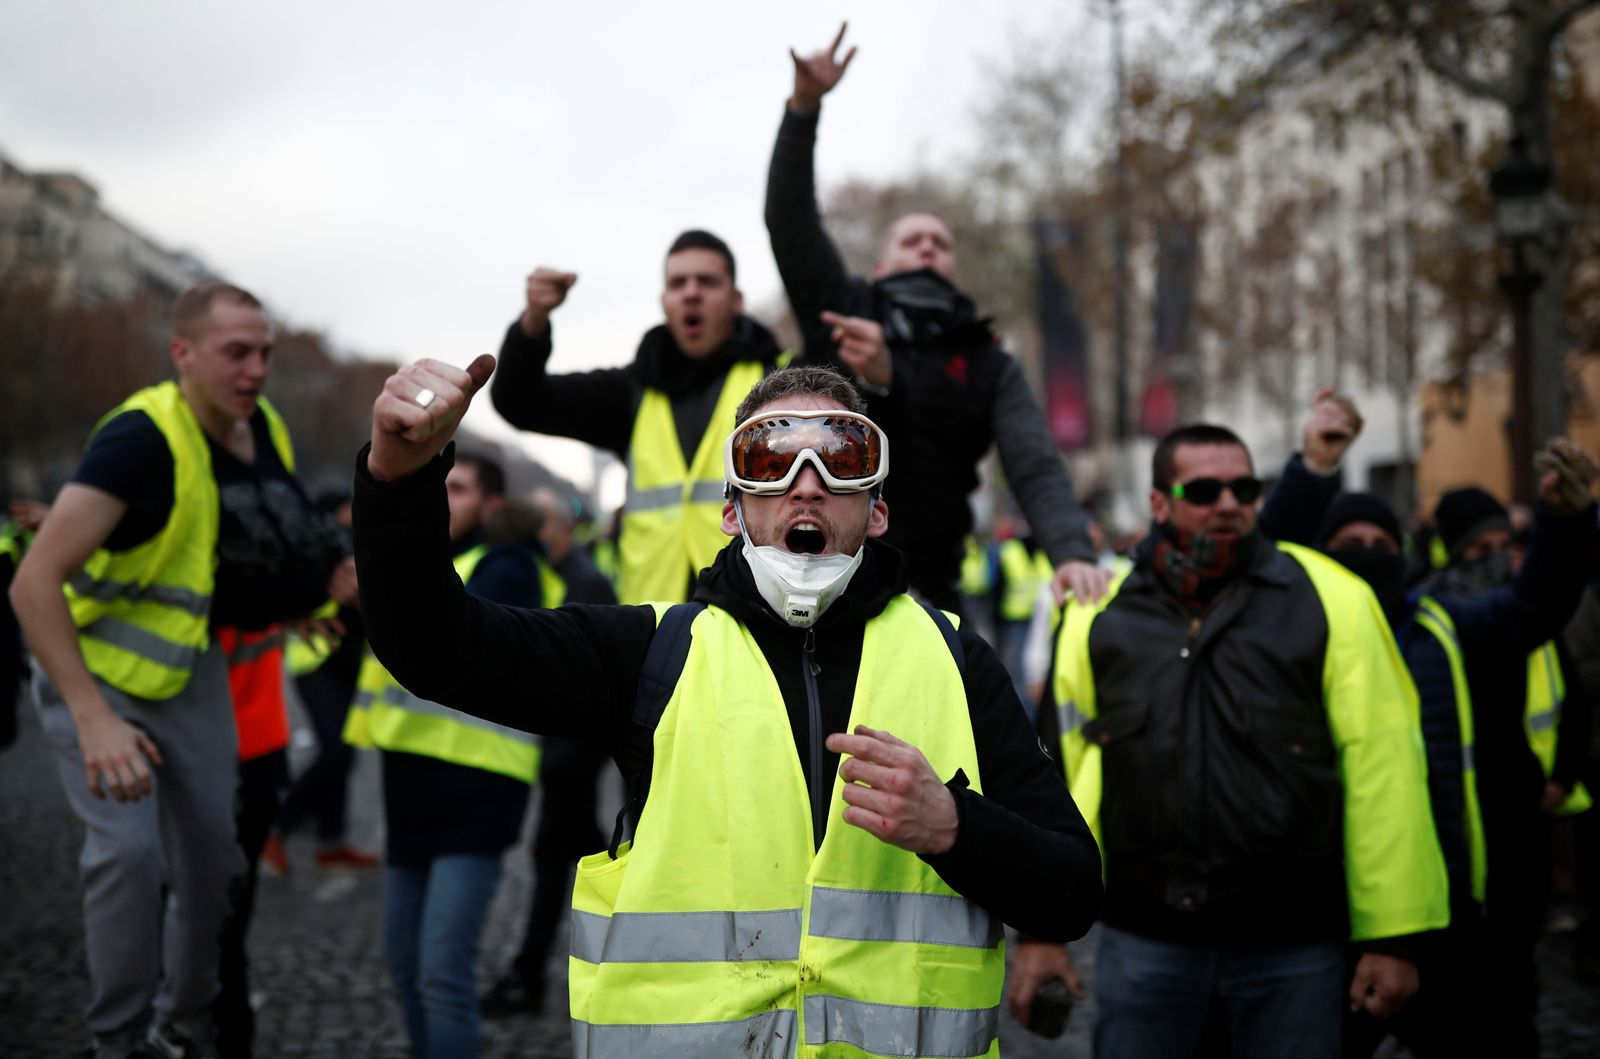 Protesters wearing yellow vest, a symbol of a French drivers' protest against higher fuel prices, shout out slogans on the Champs-Elysee in Paris